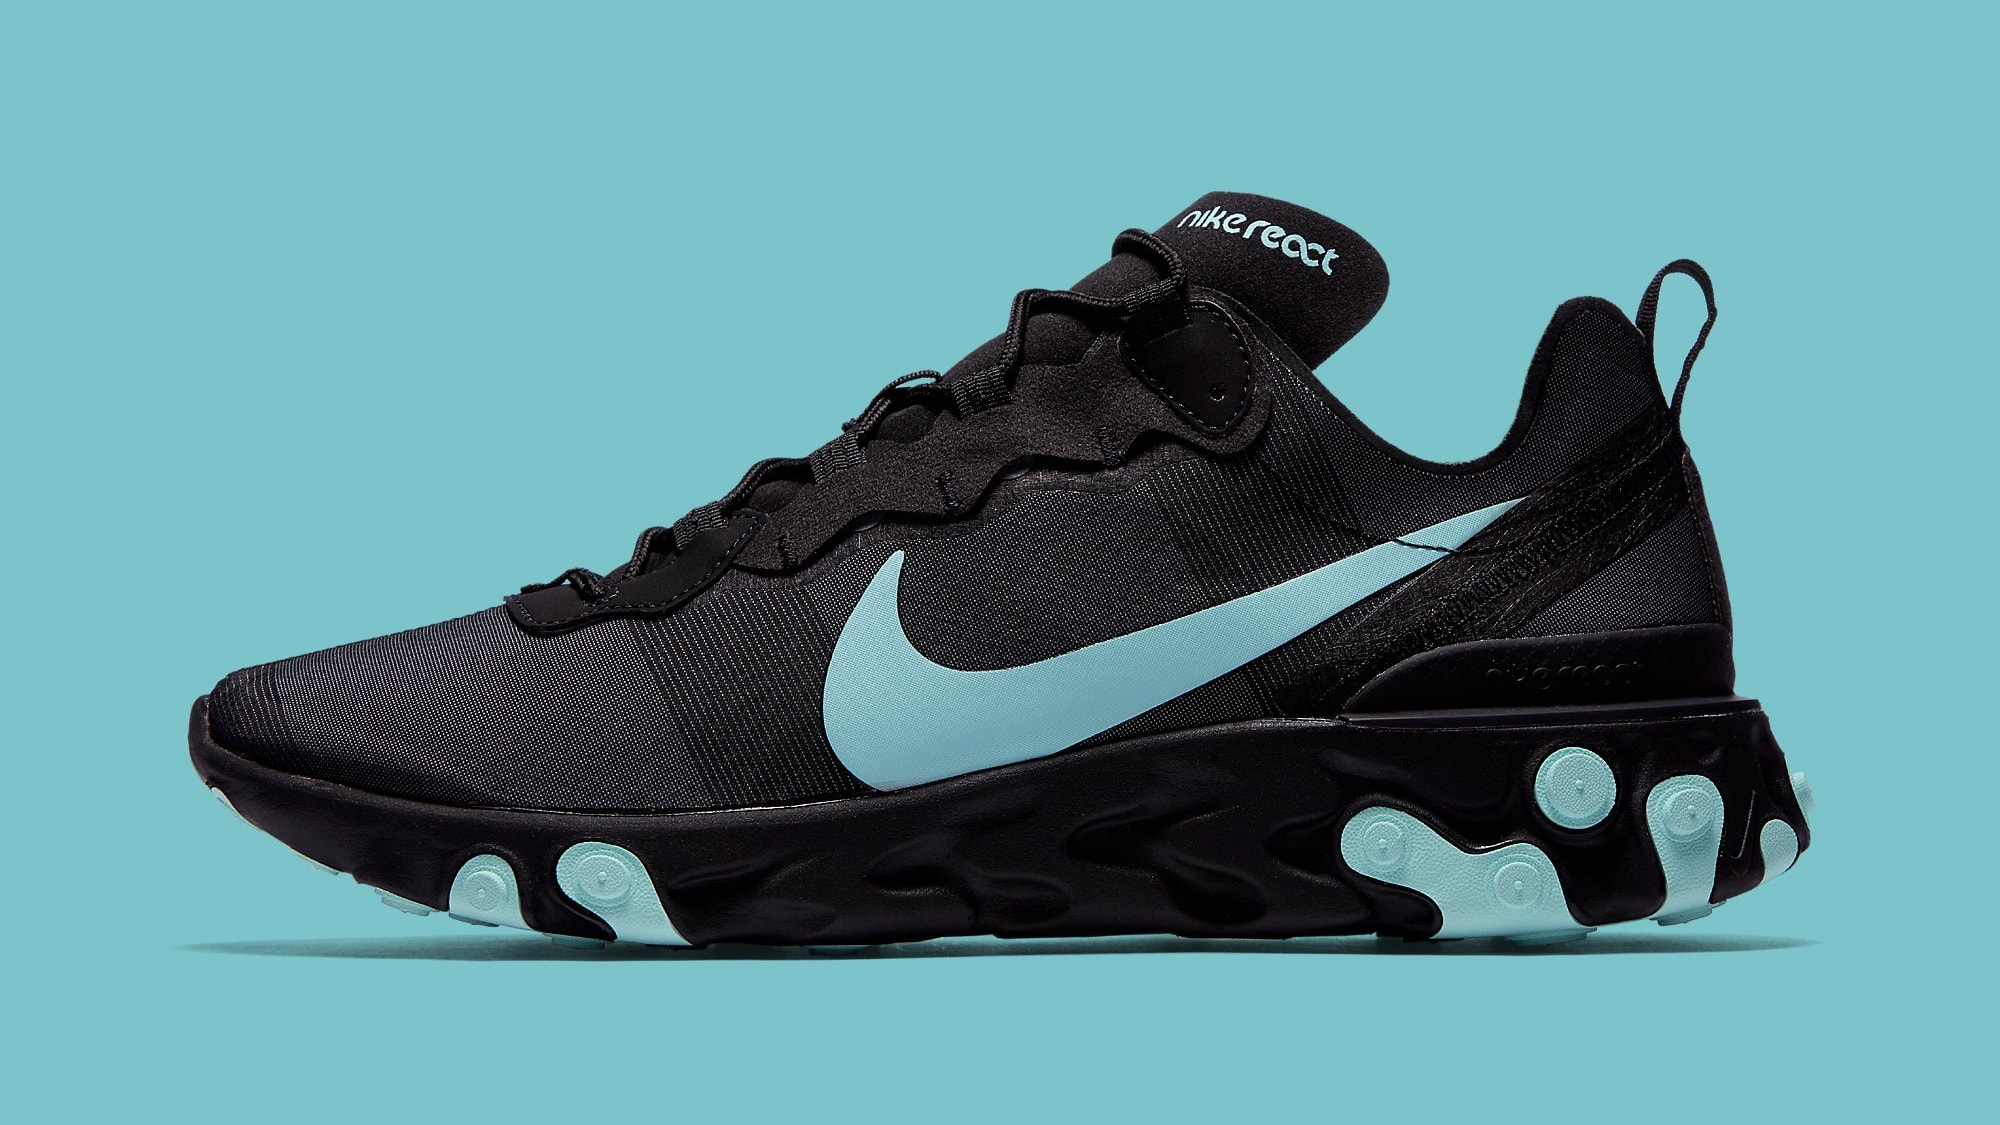 Nike React Element 55 Black Jade Release Date BQ6166-004 Profile